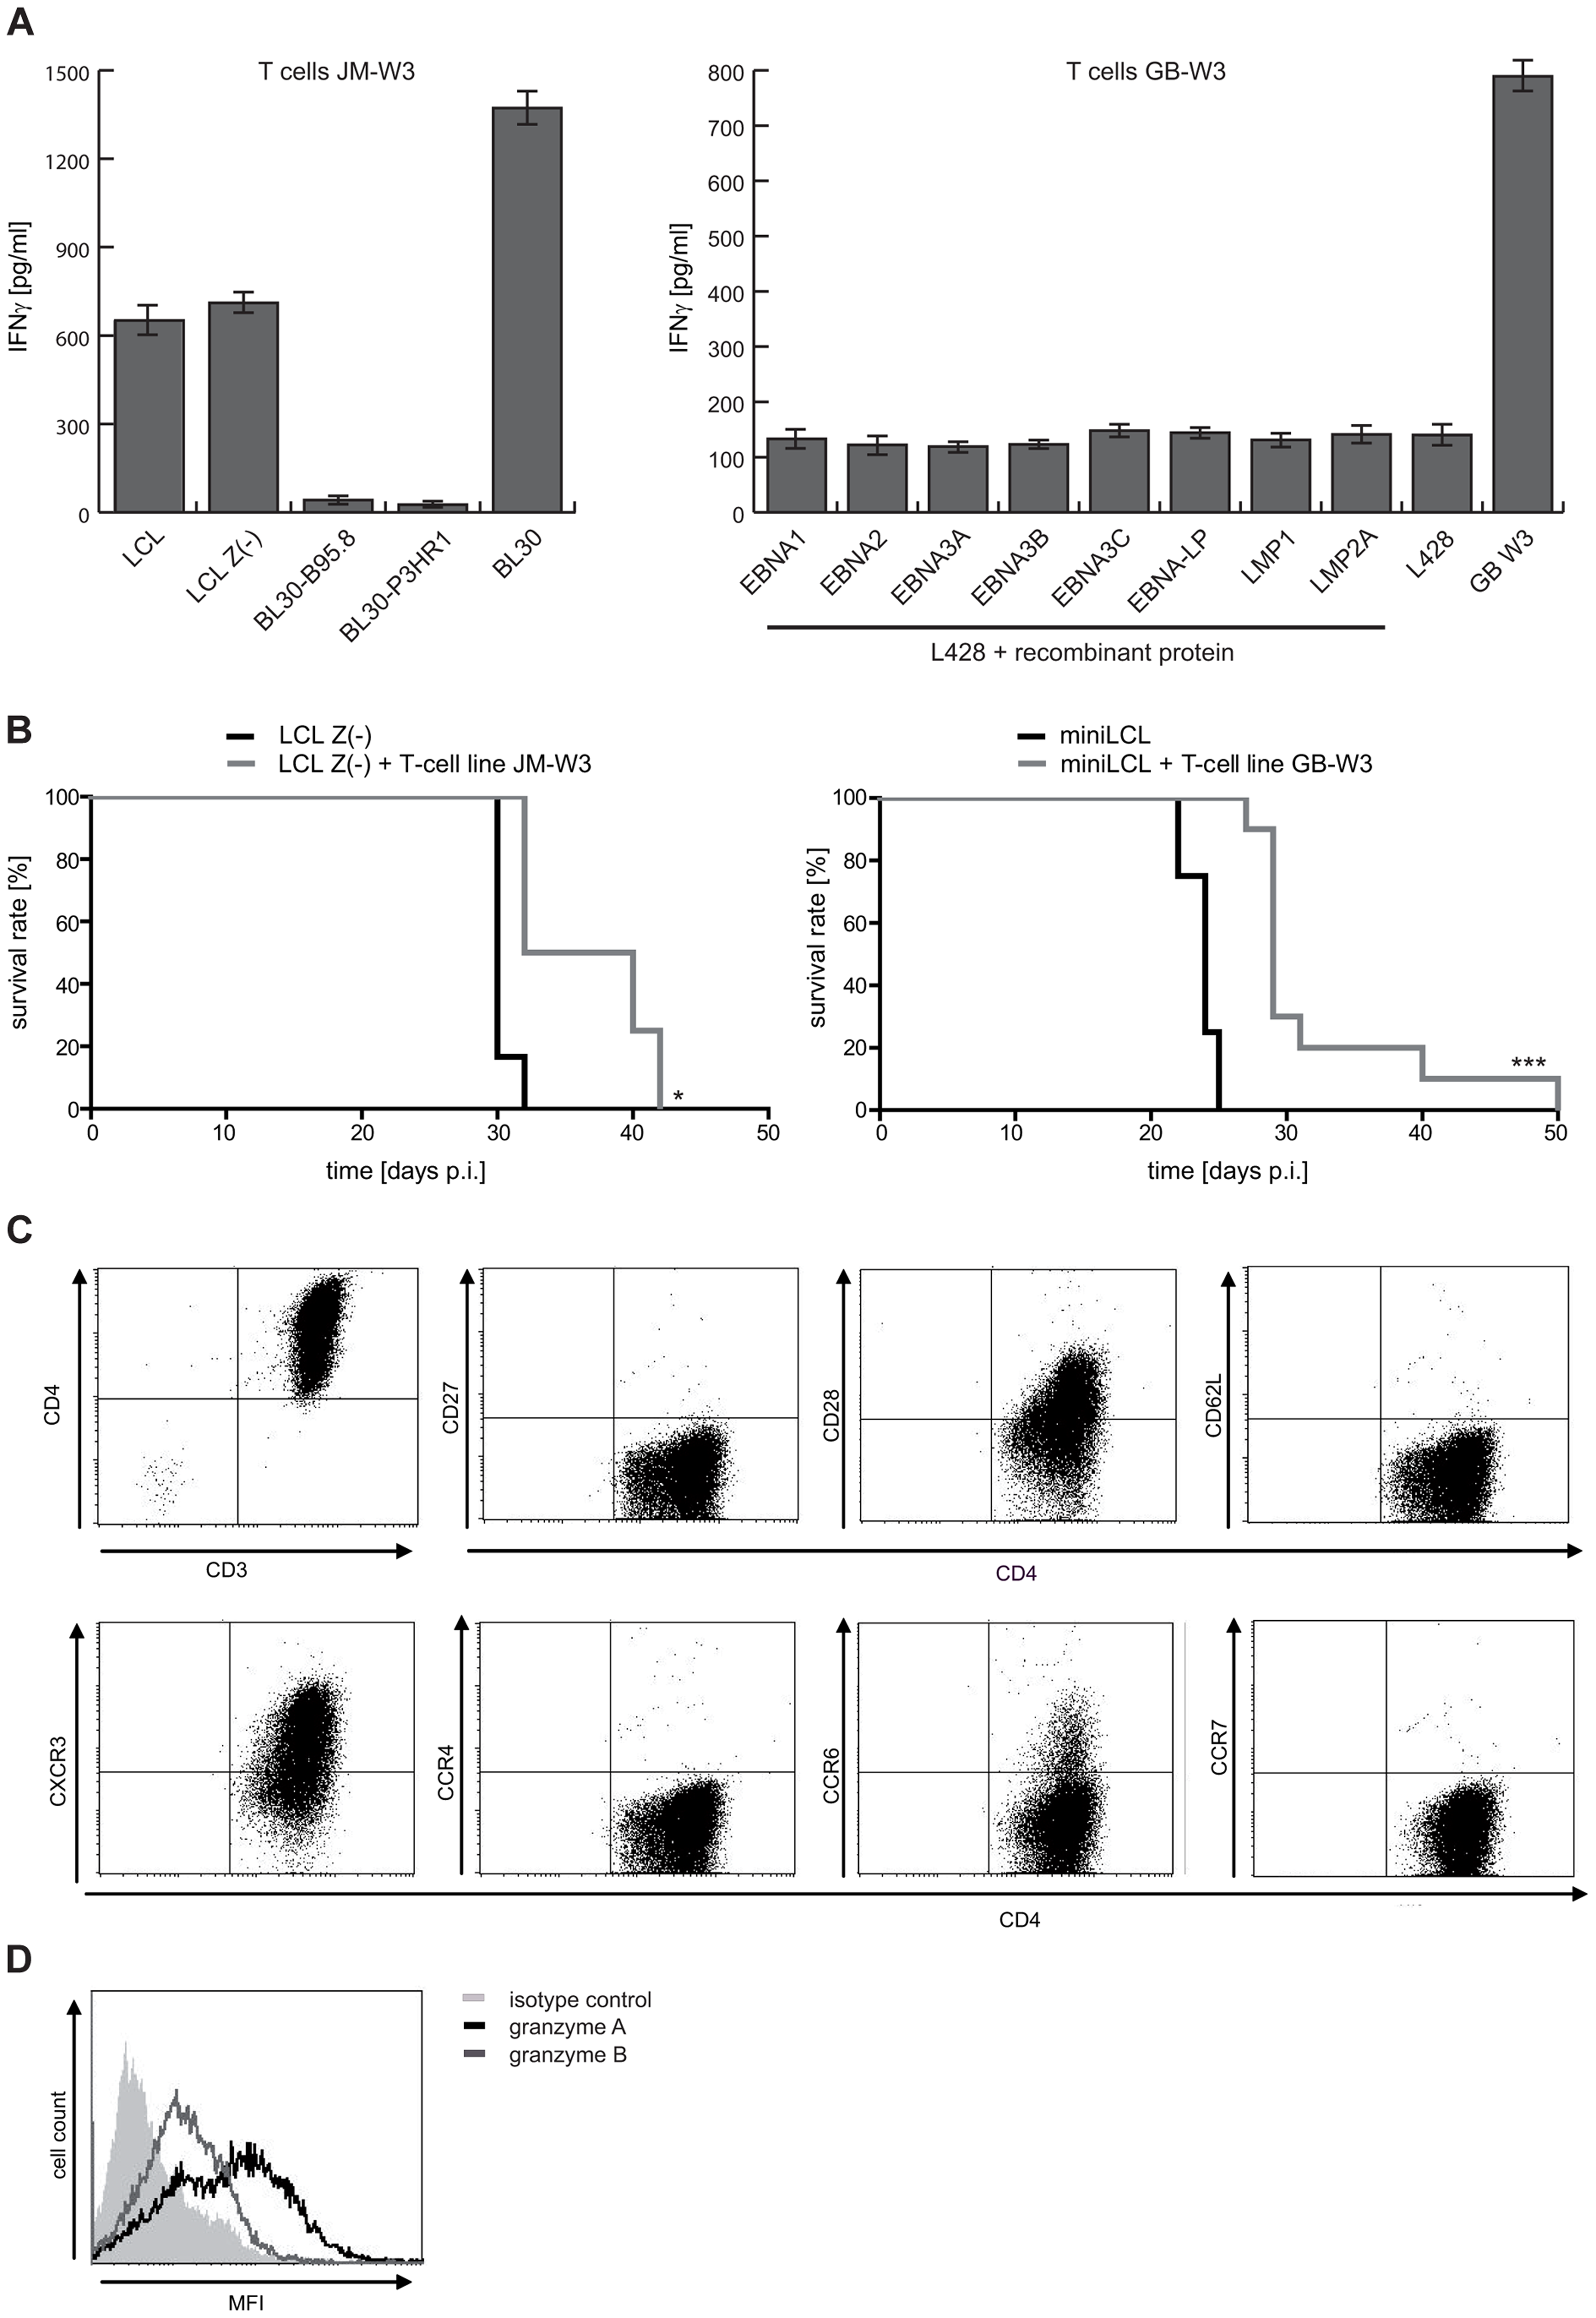 LCL Z(-)- as well as miniLCL-stimulated T-cell lines recognize autoantigens and prolong mouse survival.